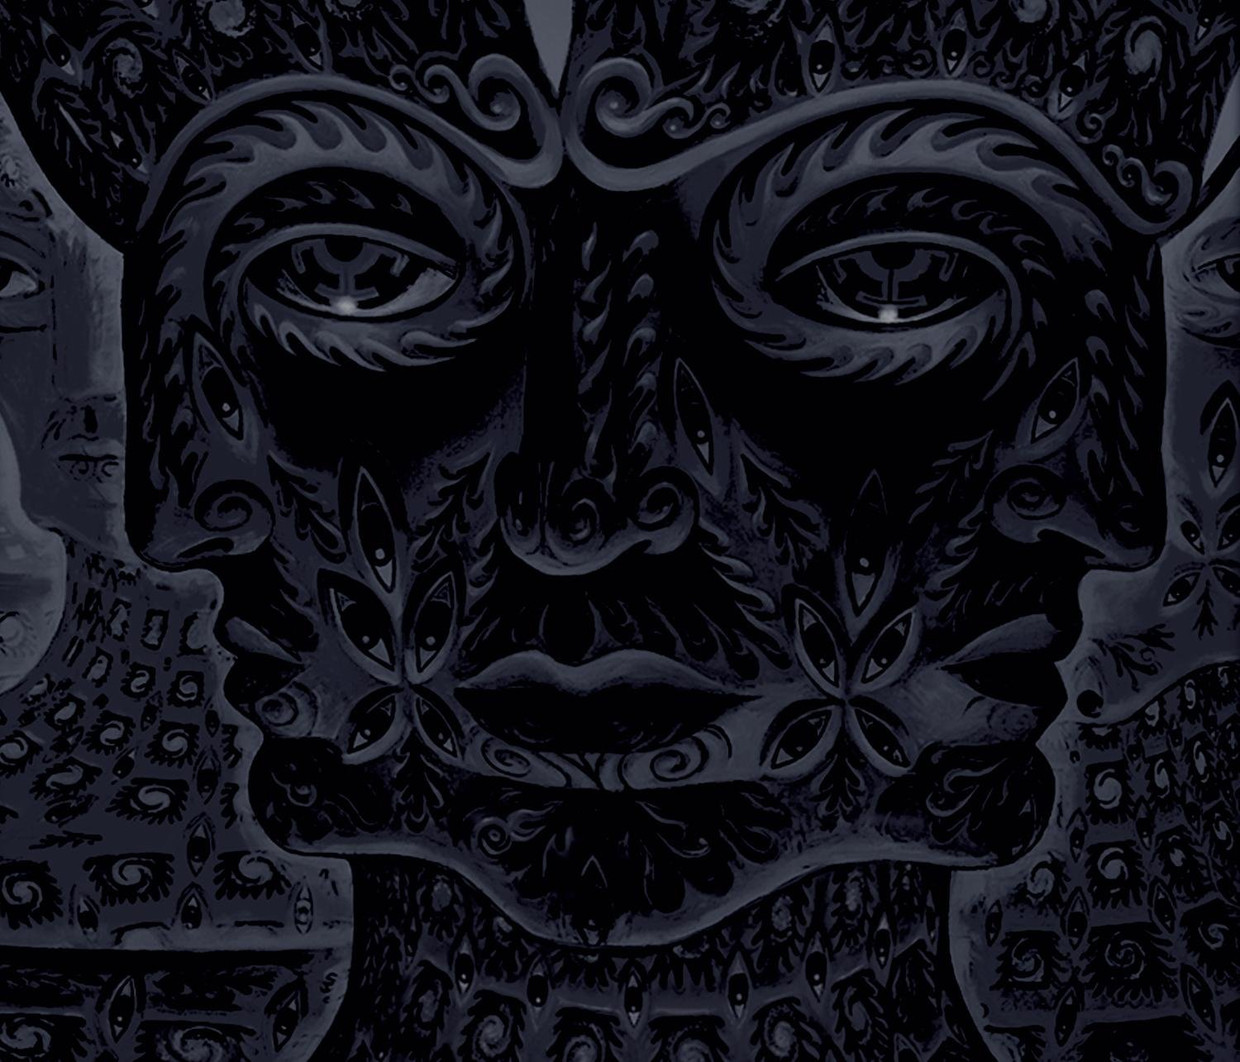 Artwork van 10.000 Days, een album van Tool